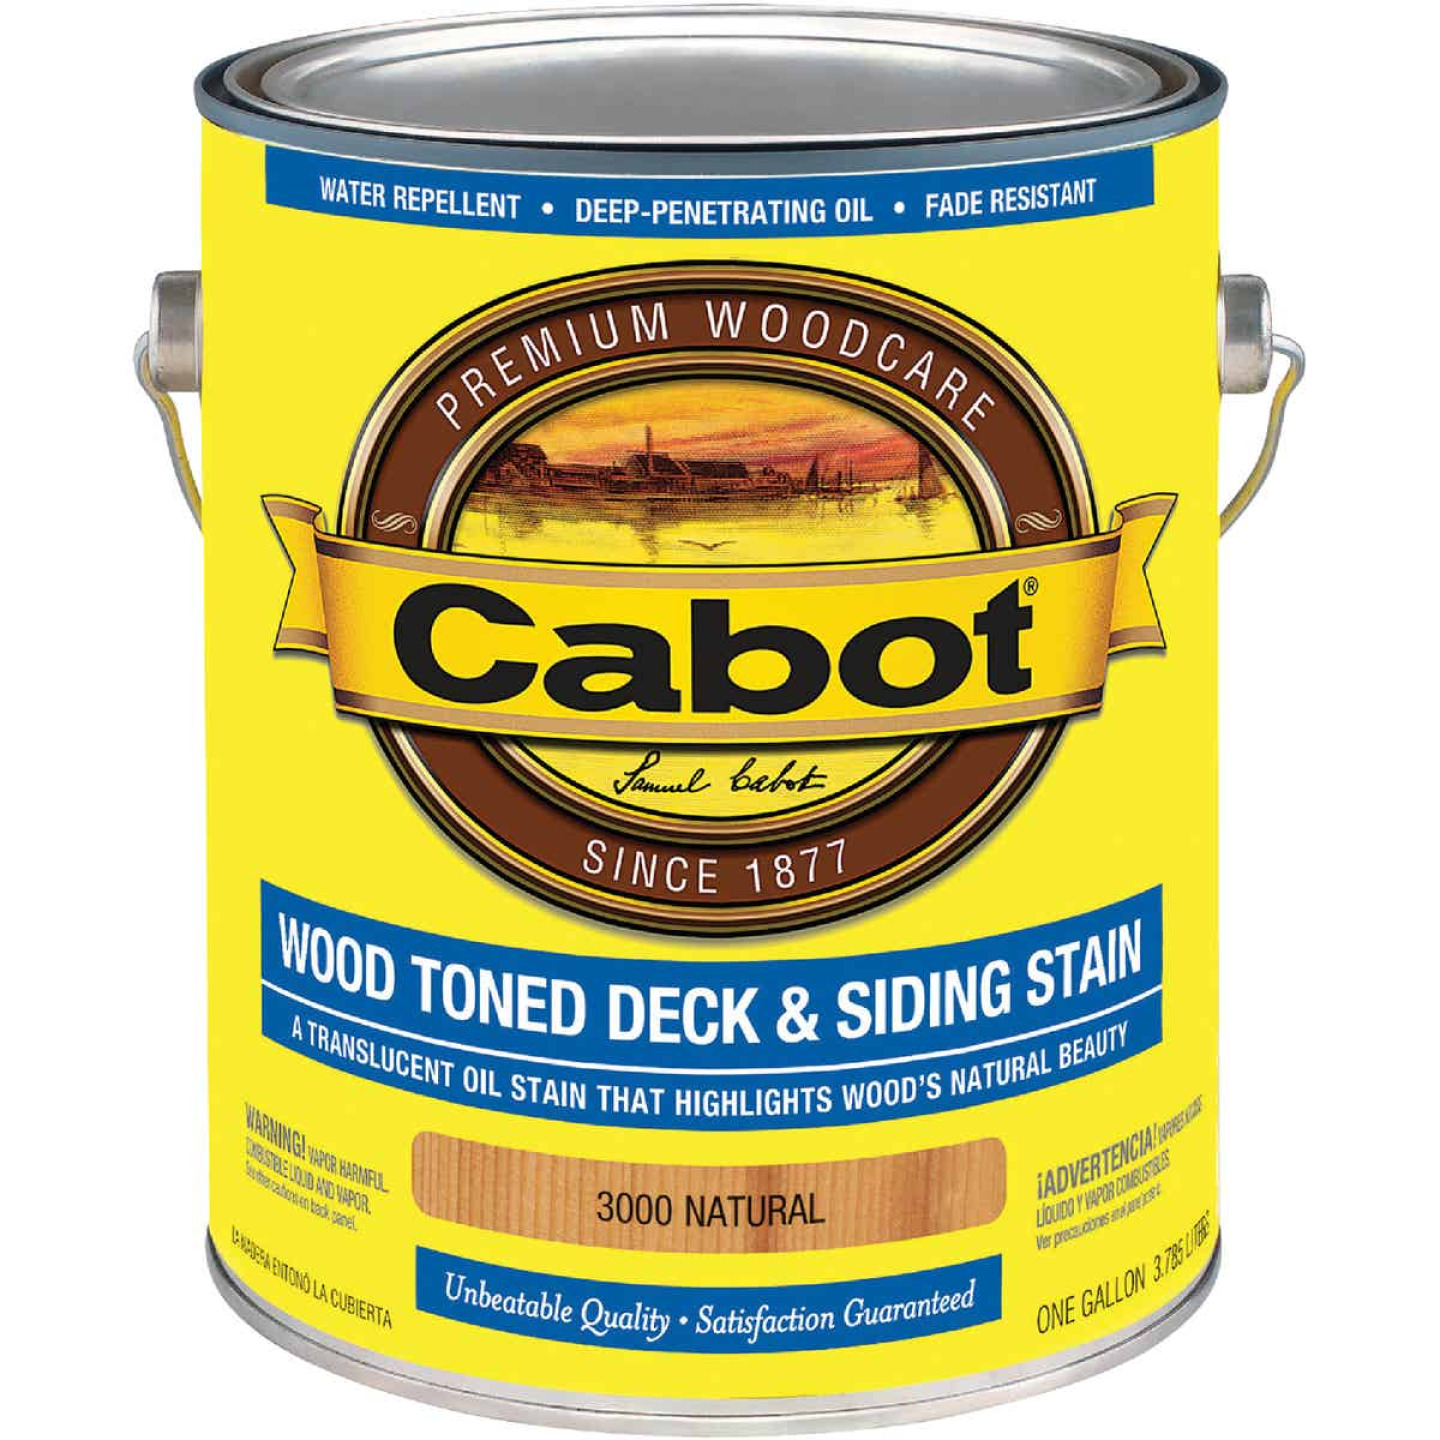 Cabot Alkyd/Oil Base Wood Toned Deck & Siding Stain, Natural, 1 Gal. Image 1